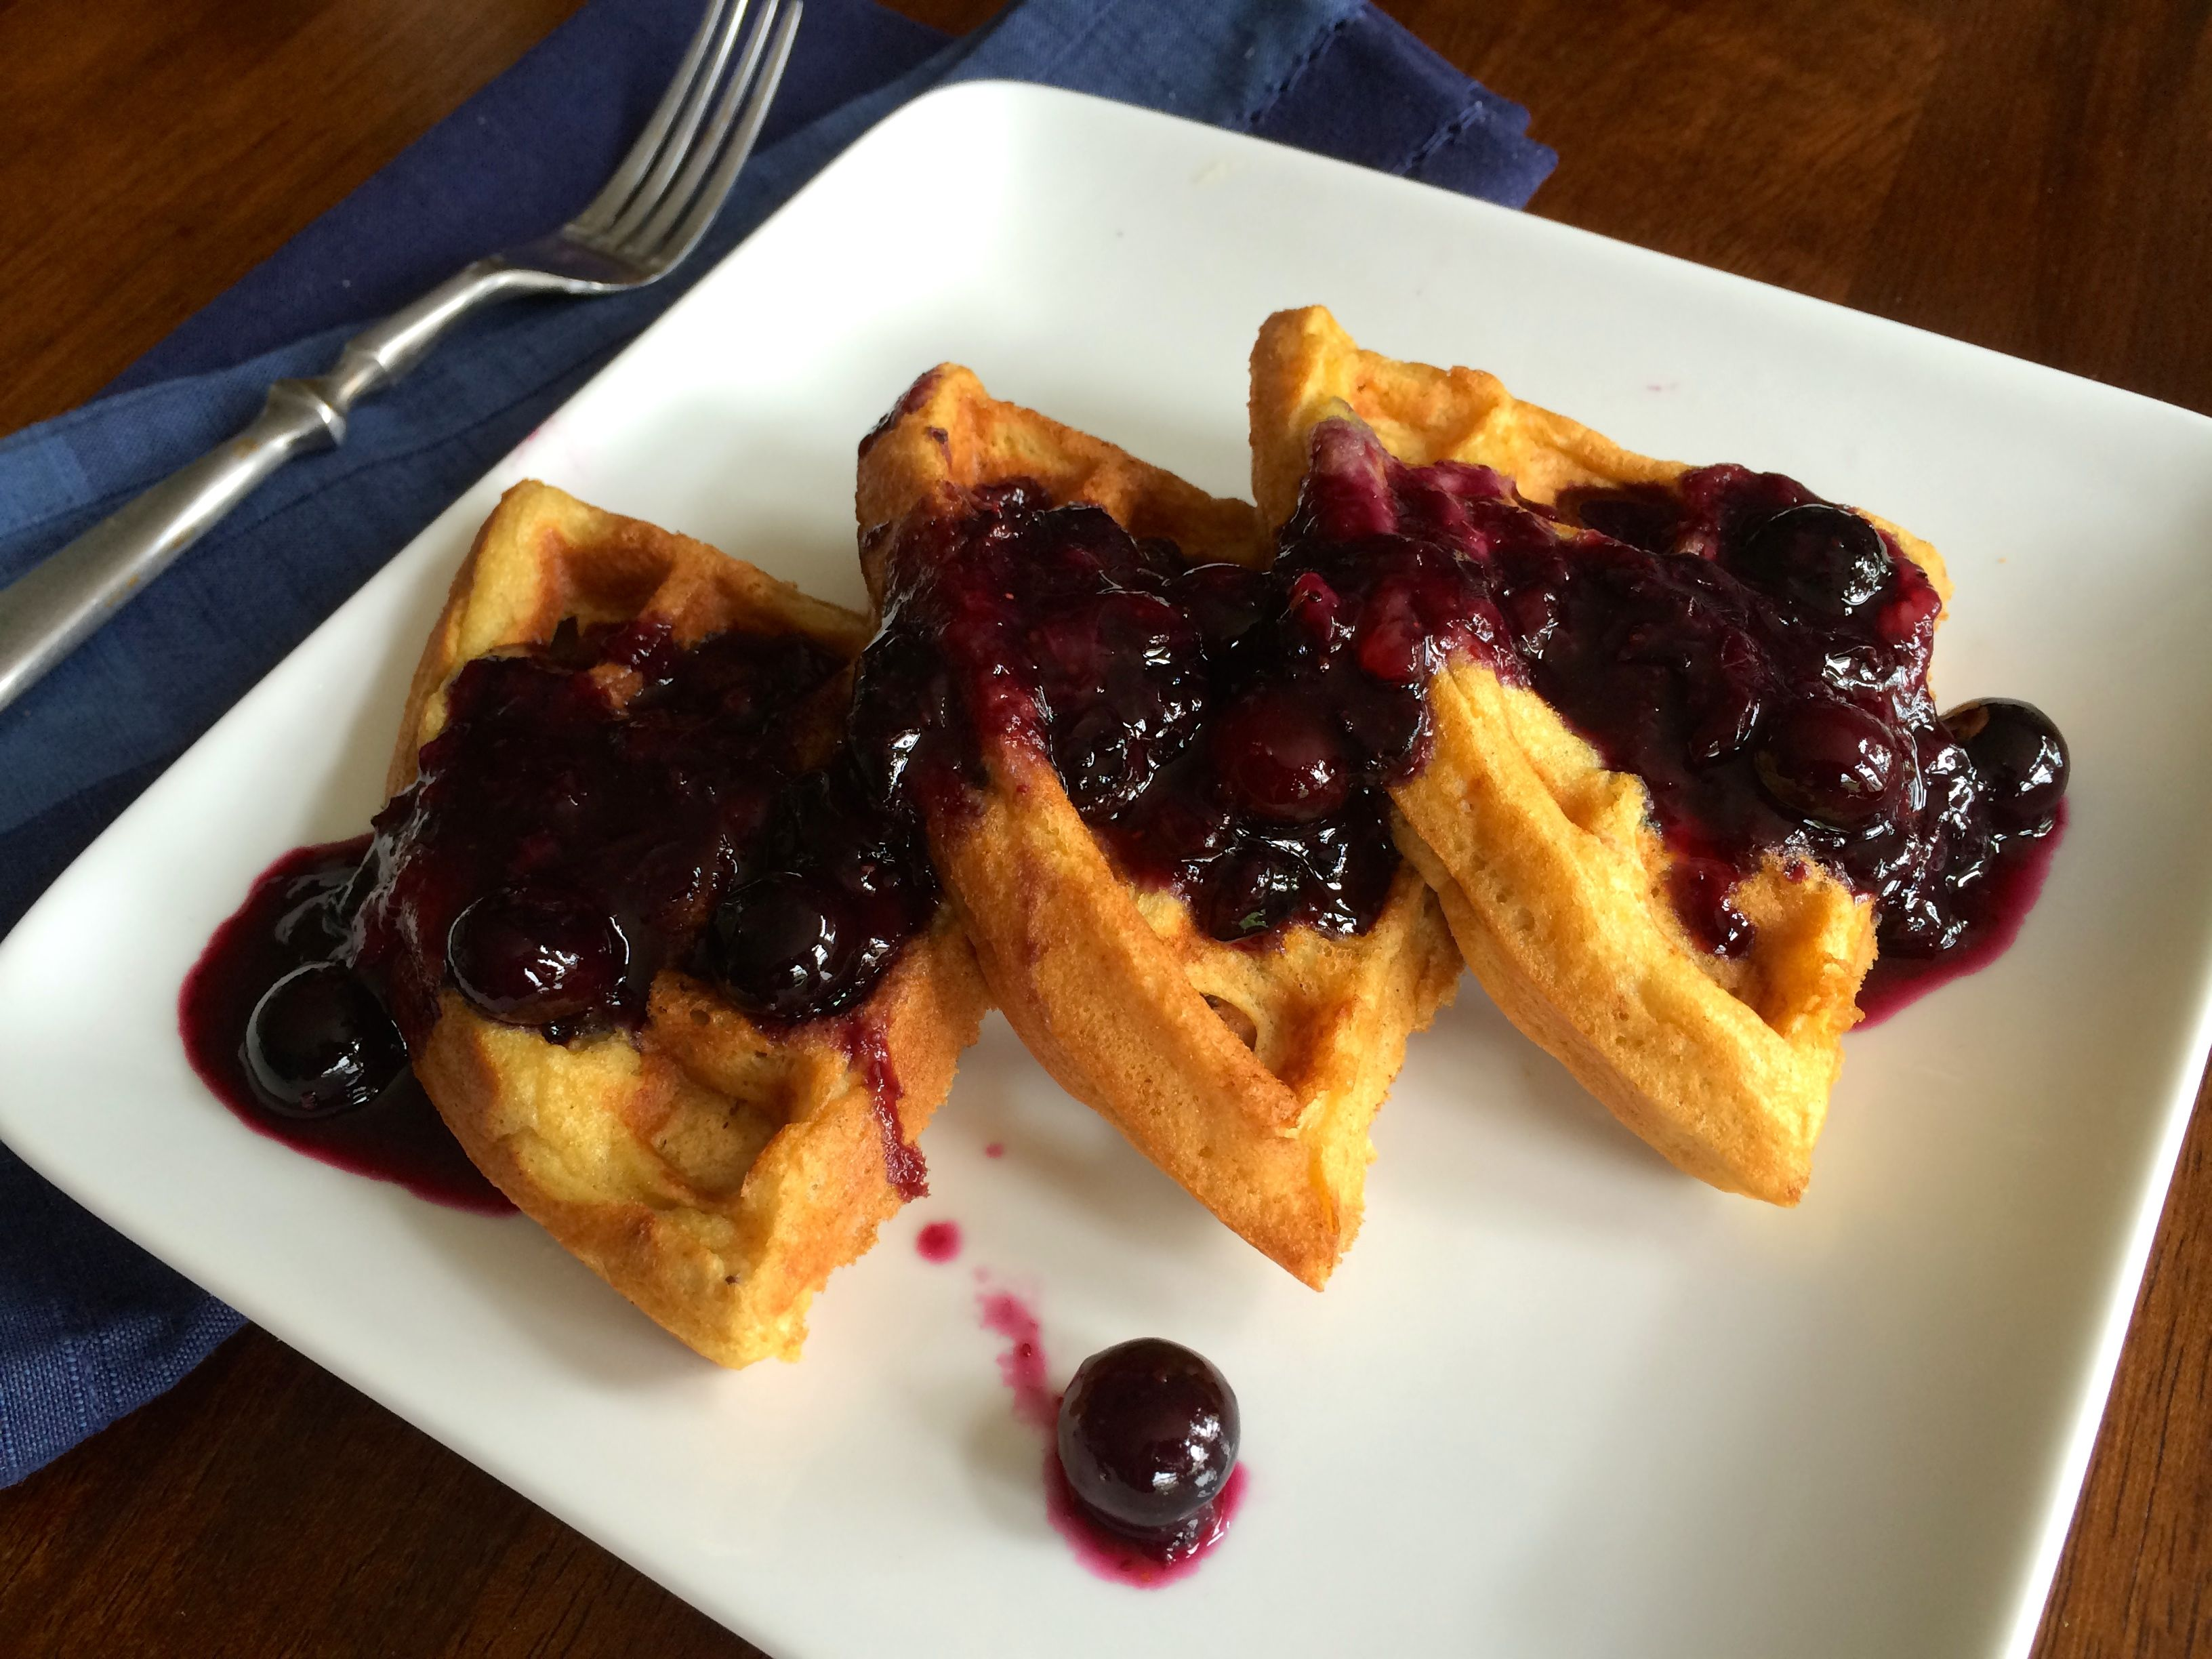 Waffles with Blueberry Maple Syrup